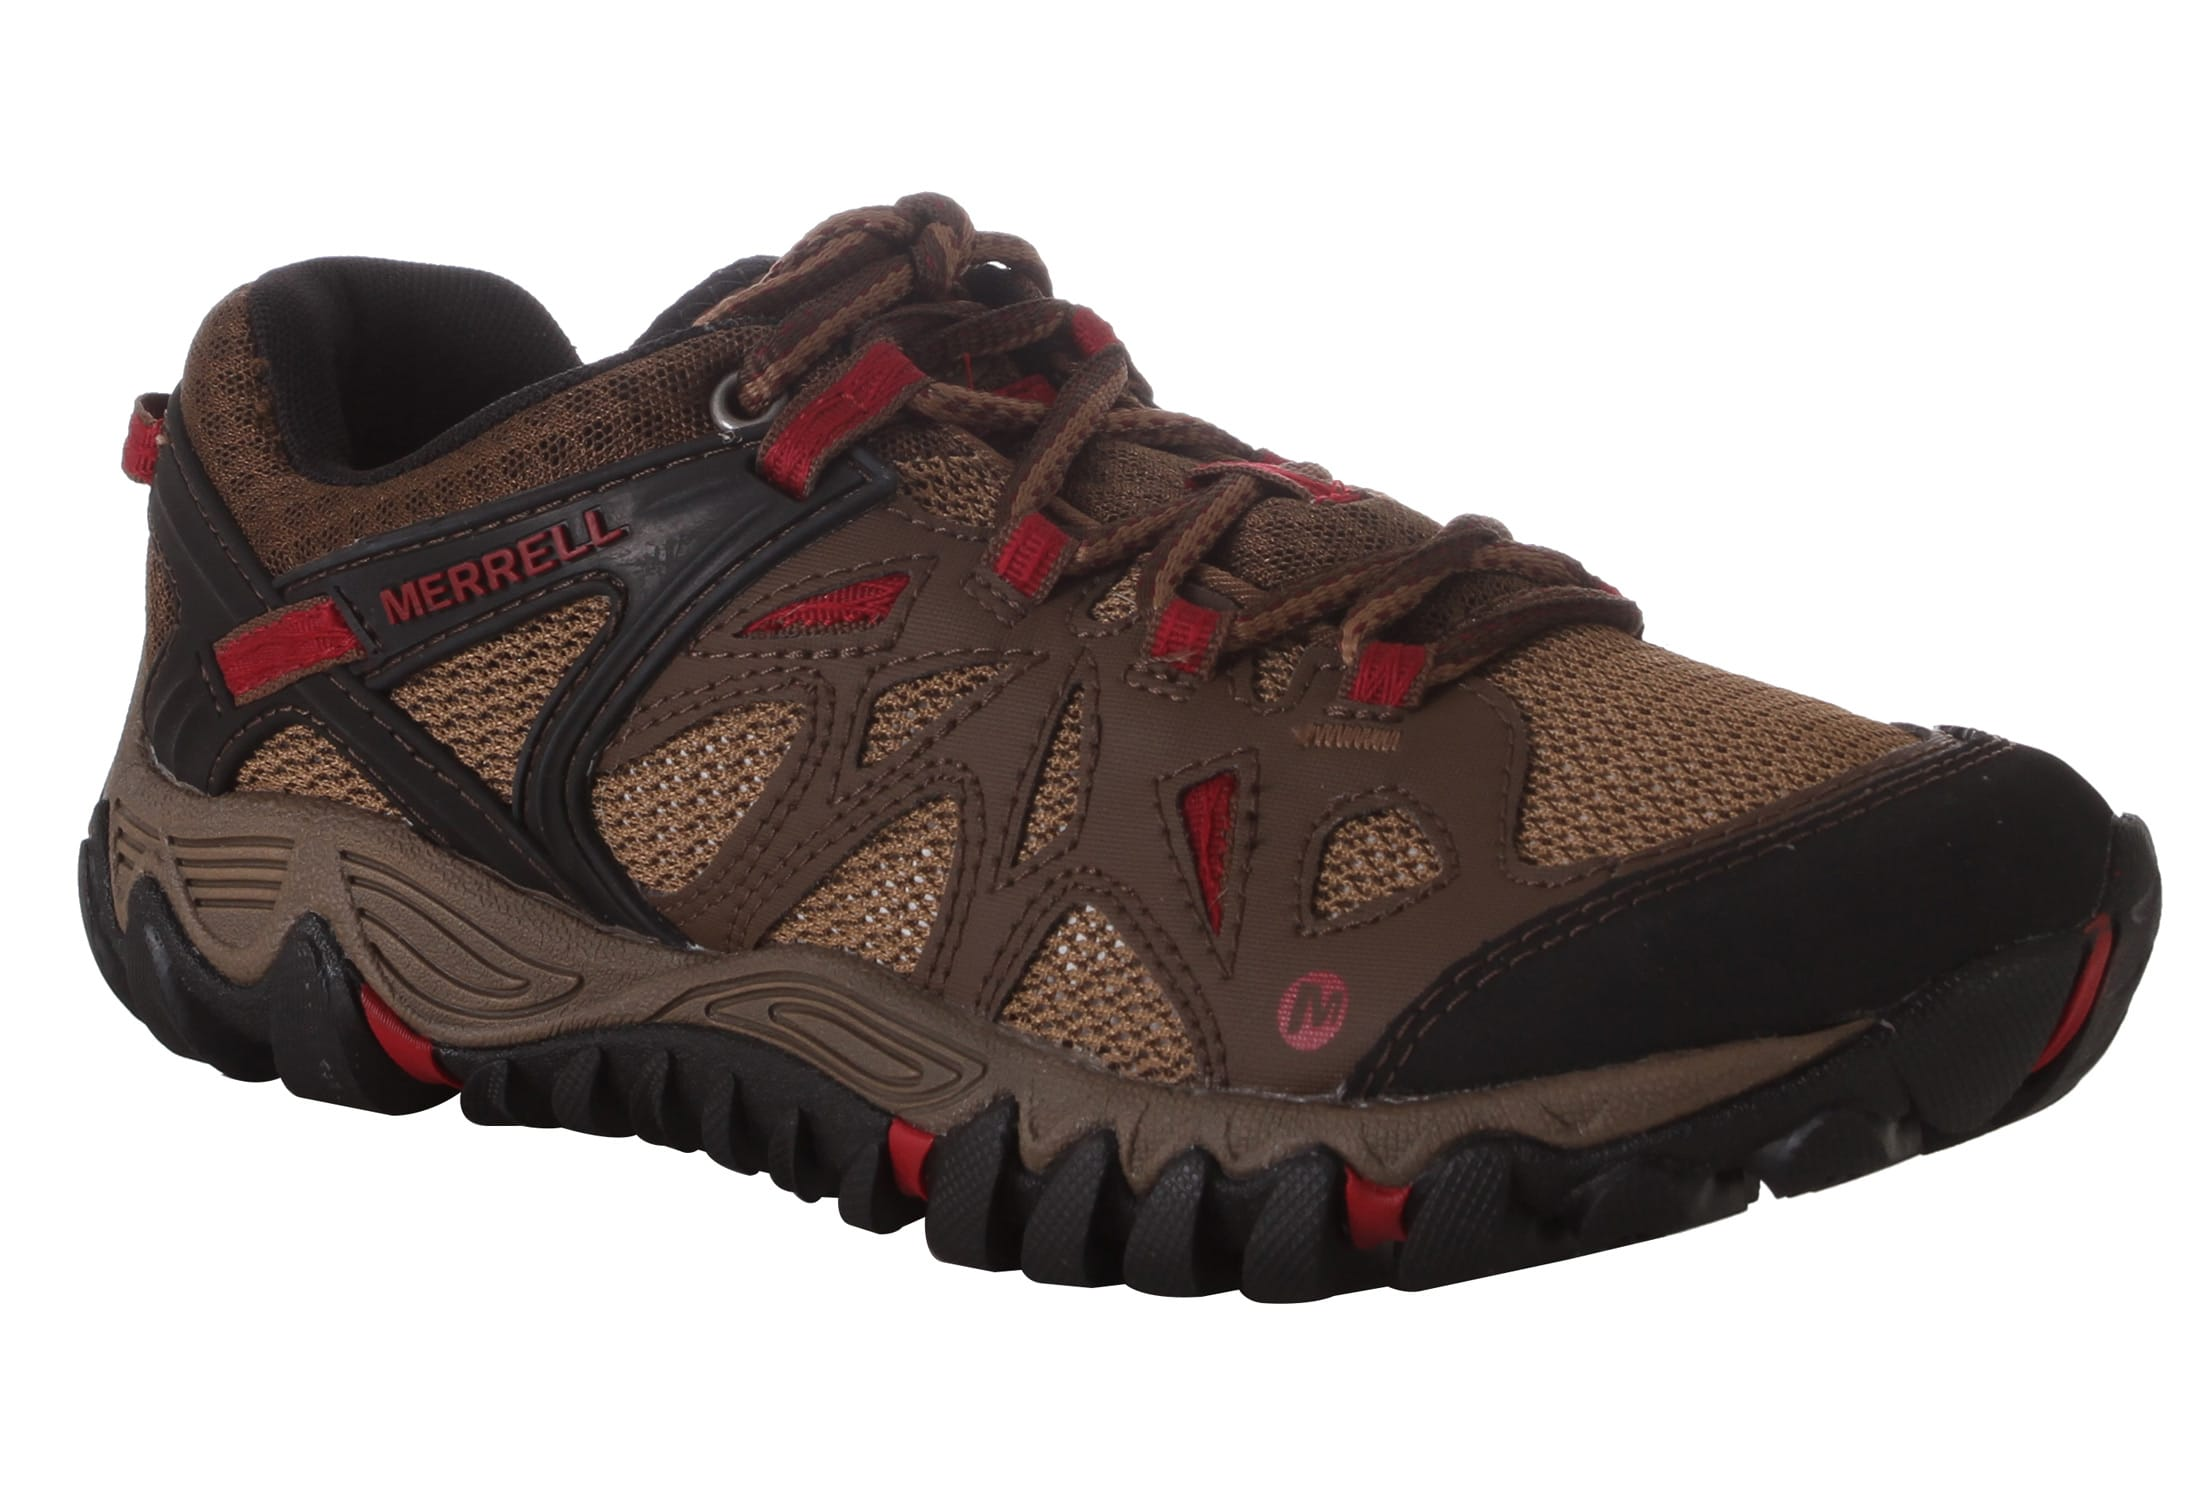 cb983c42c3a0c2 Merrell All Out Blaze Aero Sport Hiking Shoes - thumbnail 2